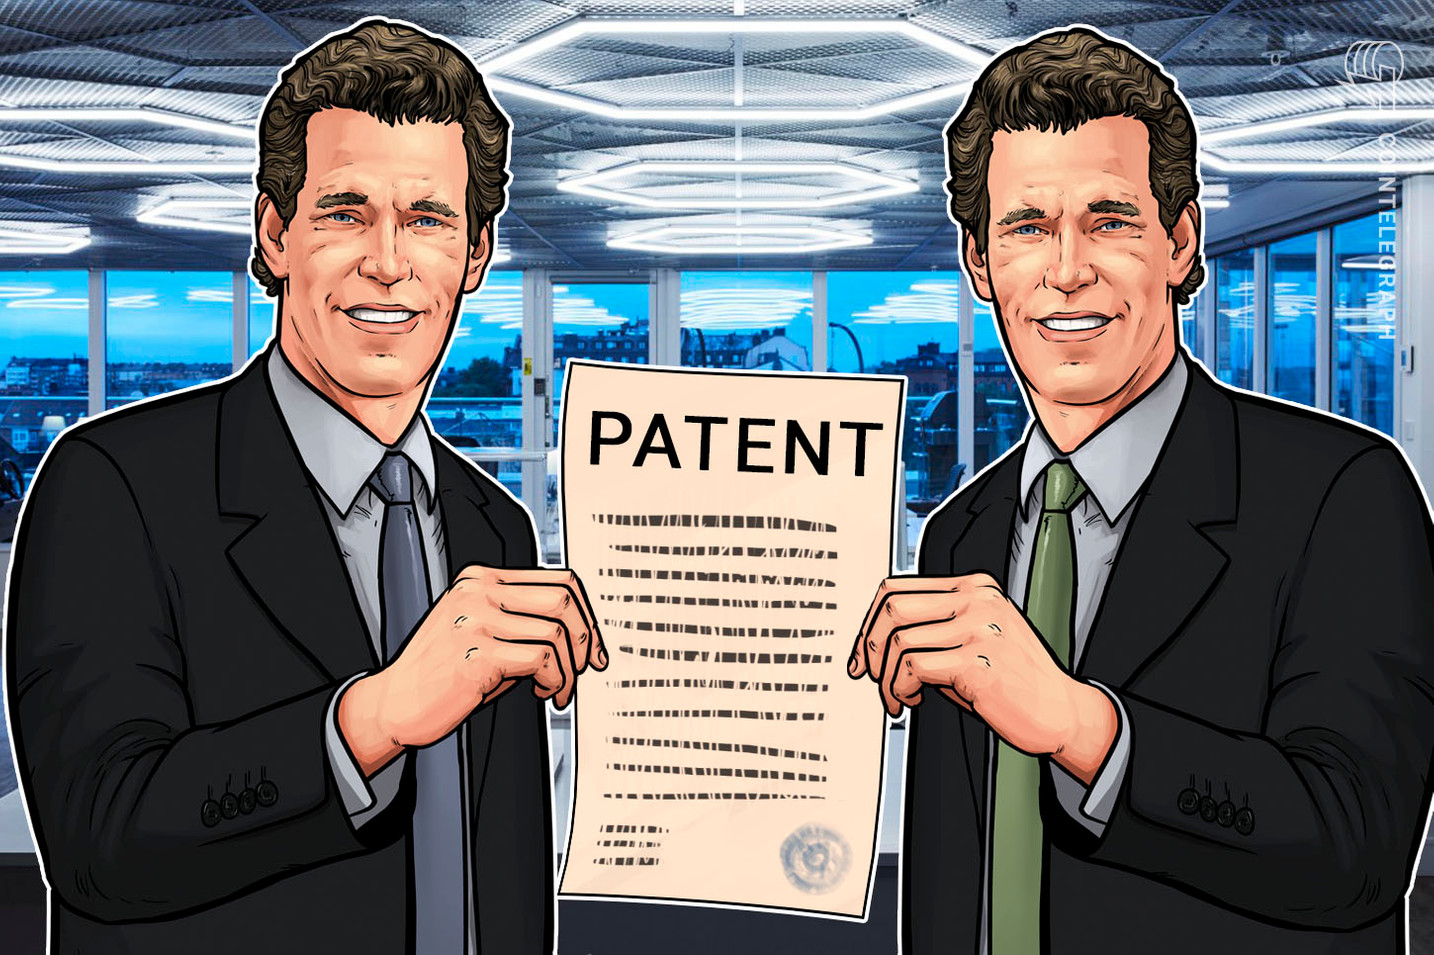 Winklevoss Twins' Company Files New Patent for Securely Storing Digital Assets